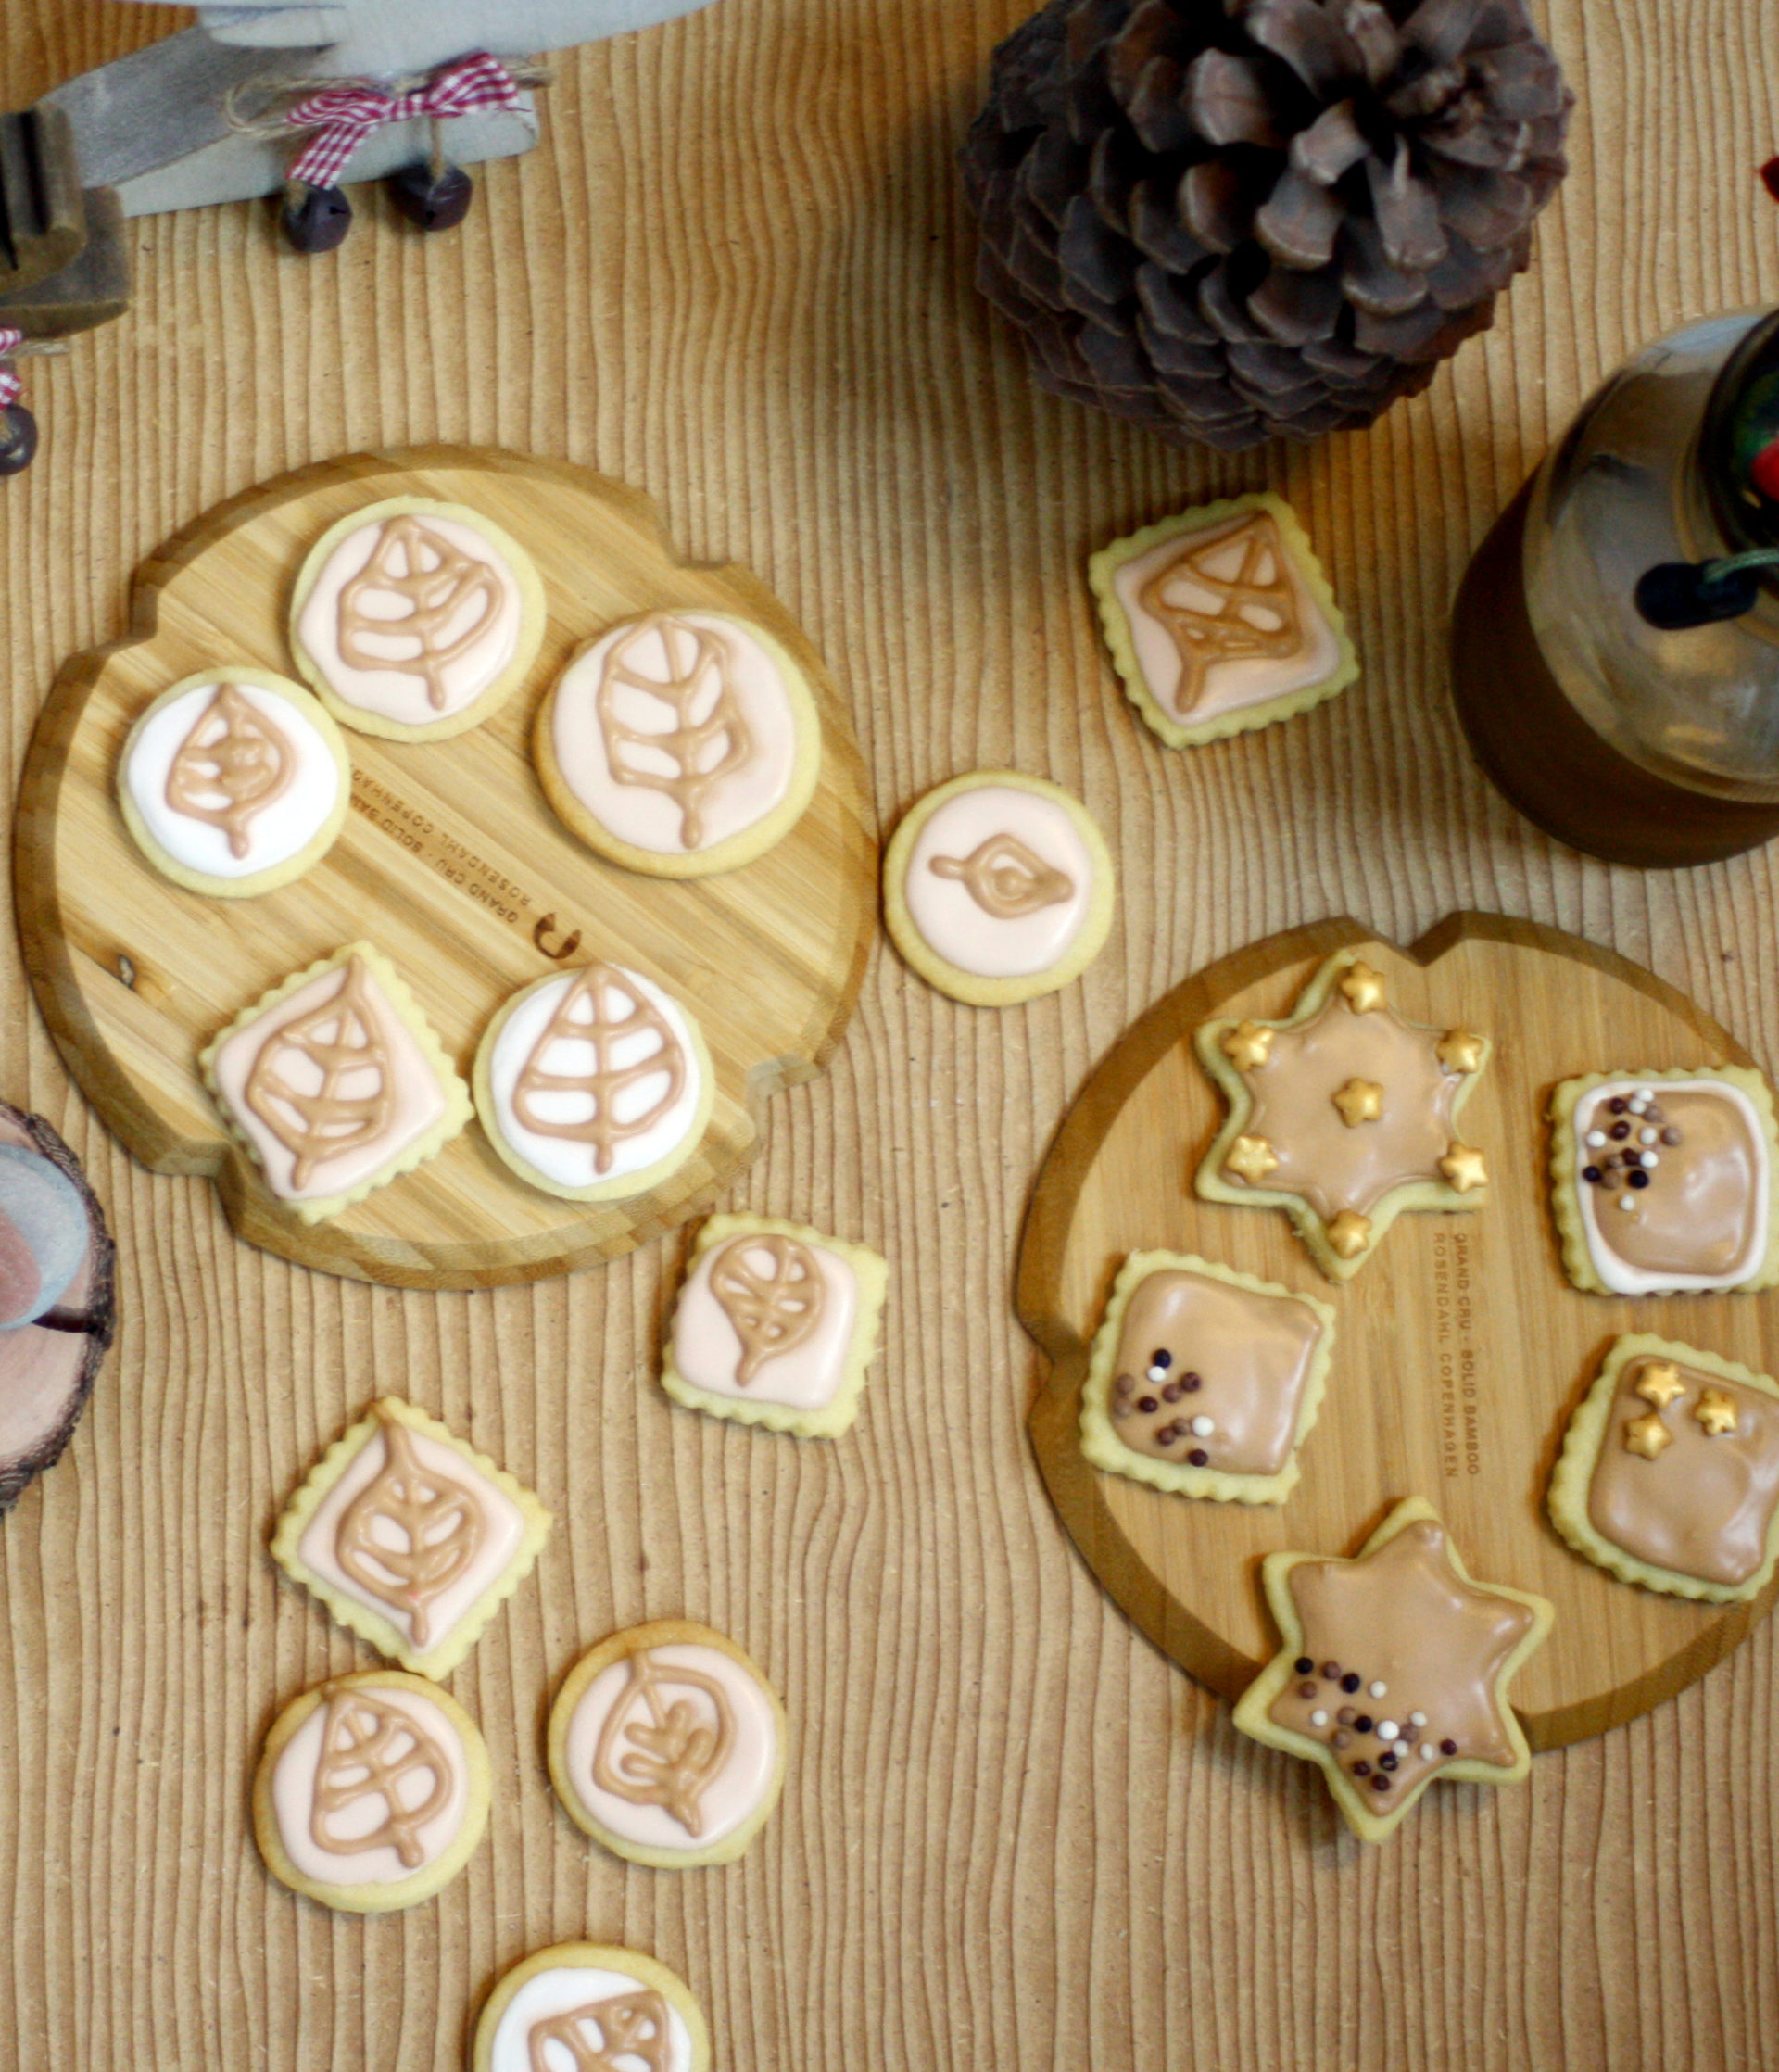 Herbst Mürbekekse // Autumn Cookies with royal icing by http://babyrockmyday.com/herbst-muerbekekse/